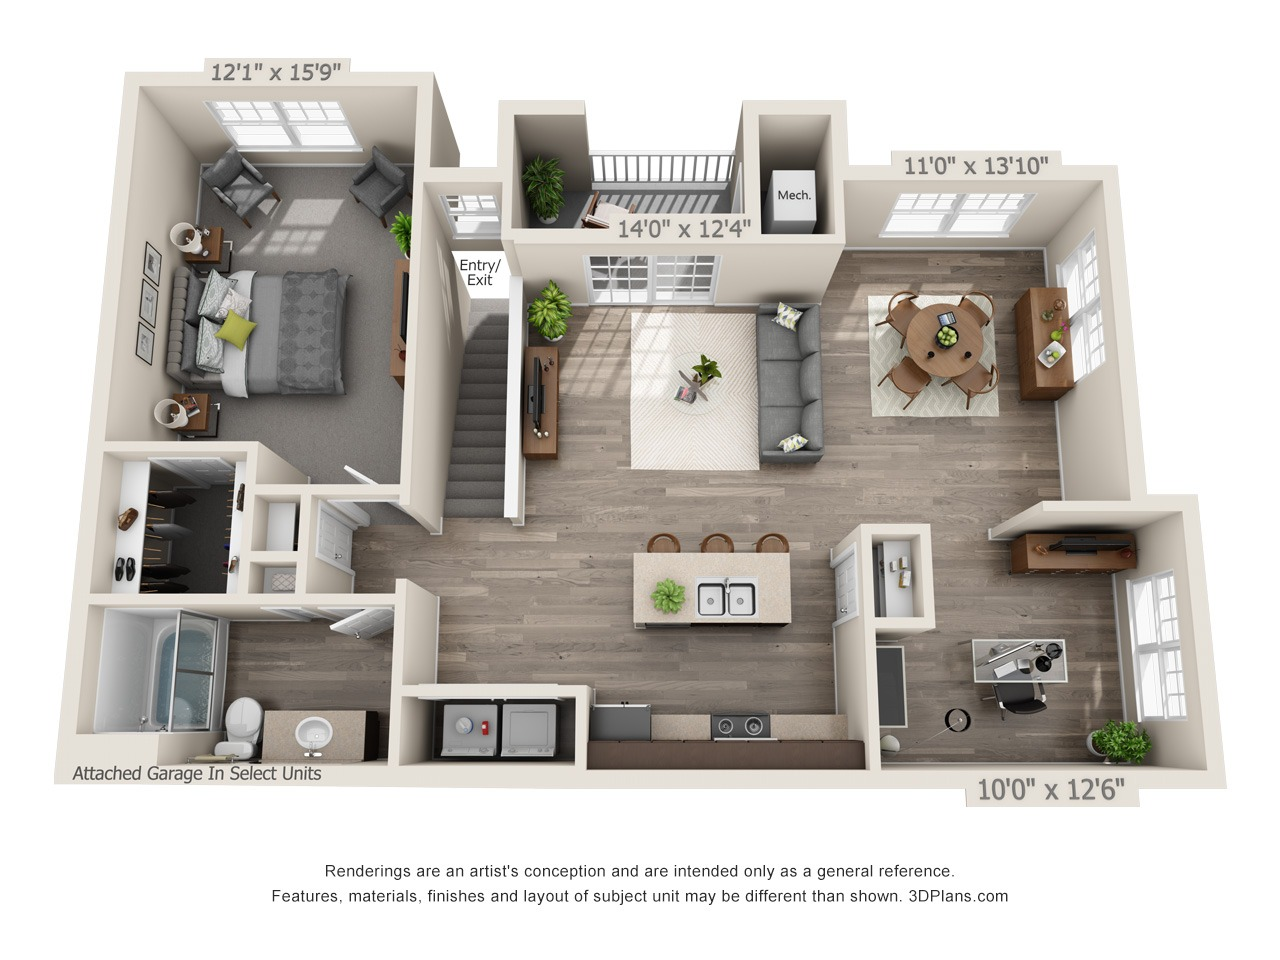 A1M - 1 Bed / 1 Bath with Den - 2nd Floor - 1,073 SF